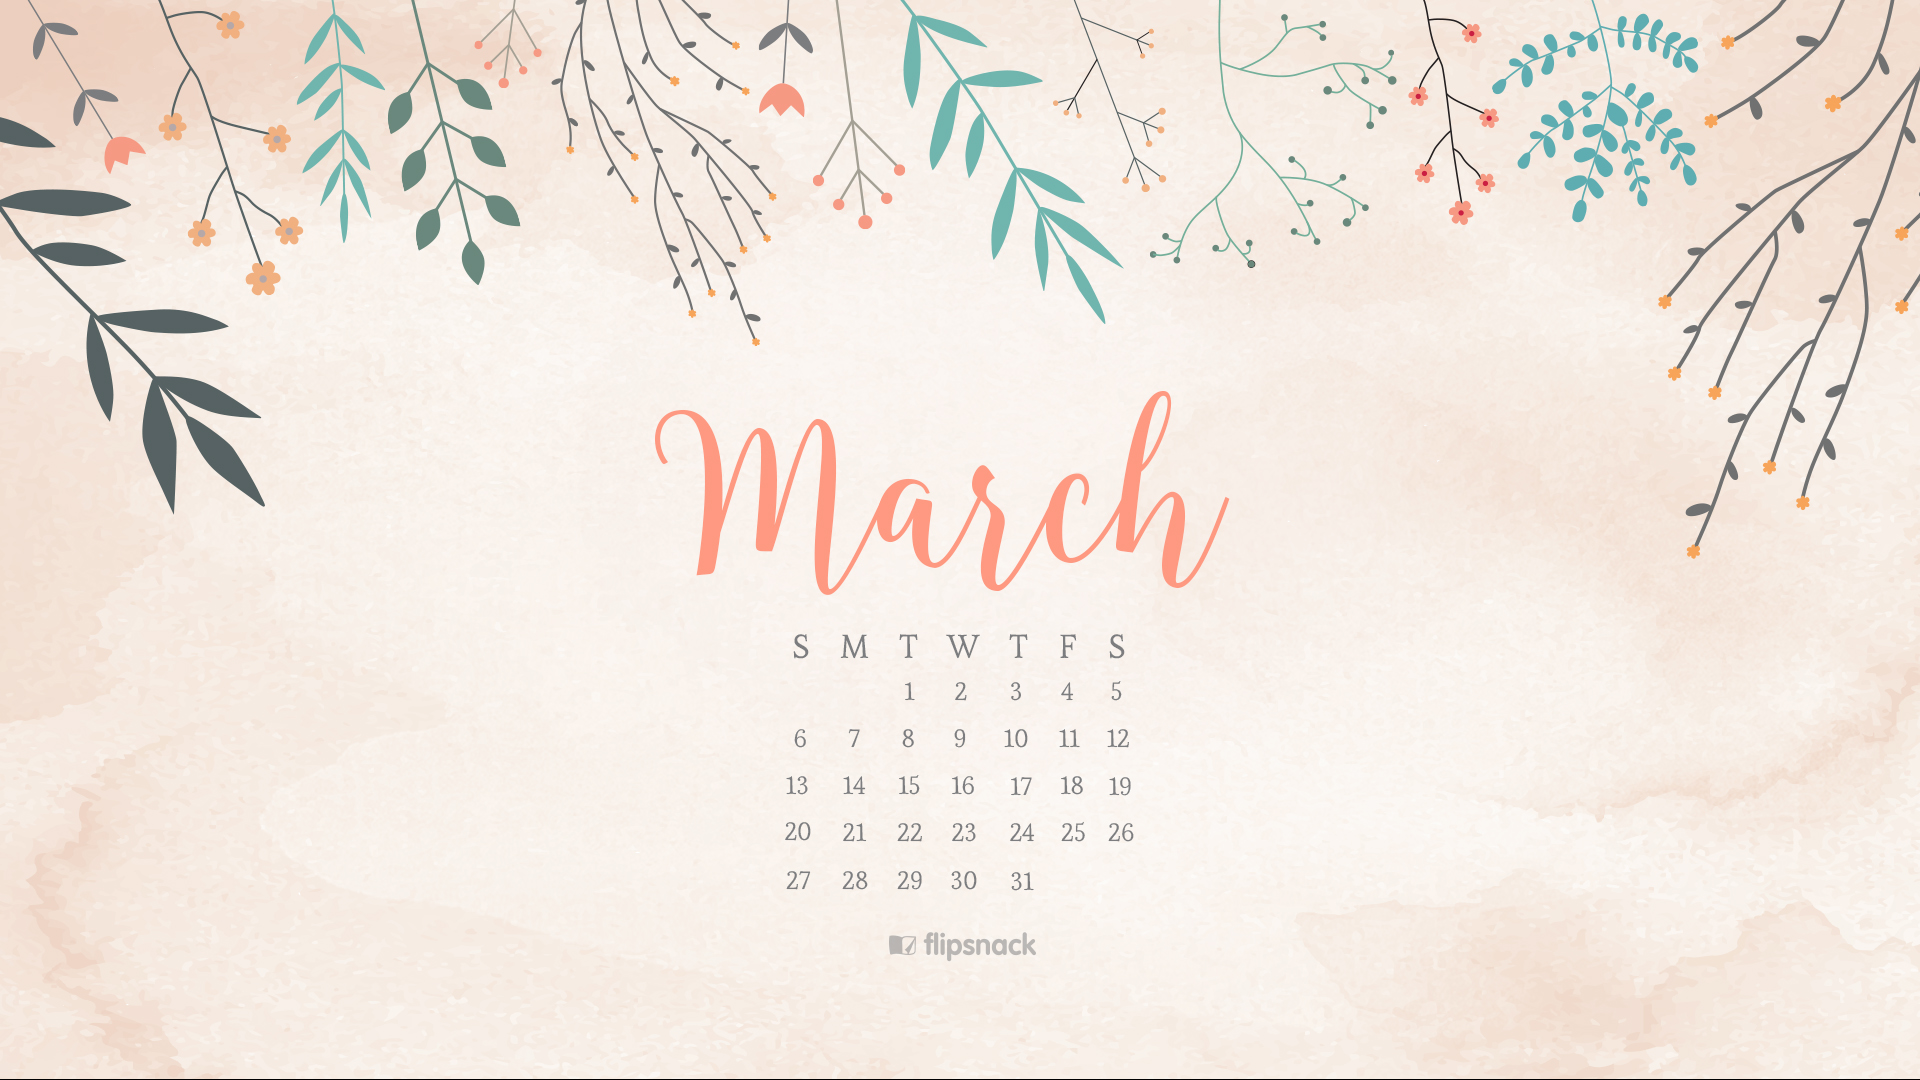 Tumblr Calendar Wallpaper : March free calendar wallpaper desktop background